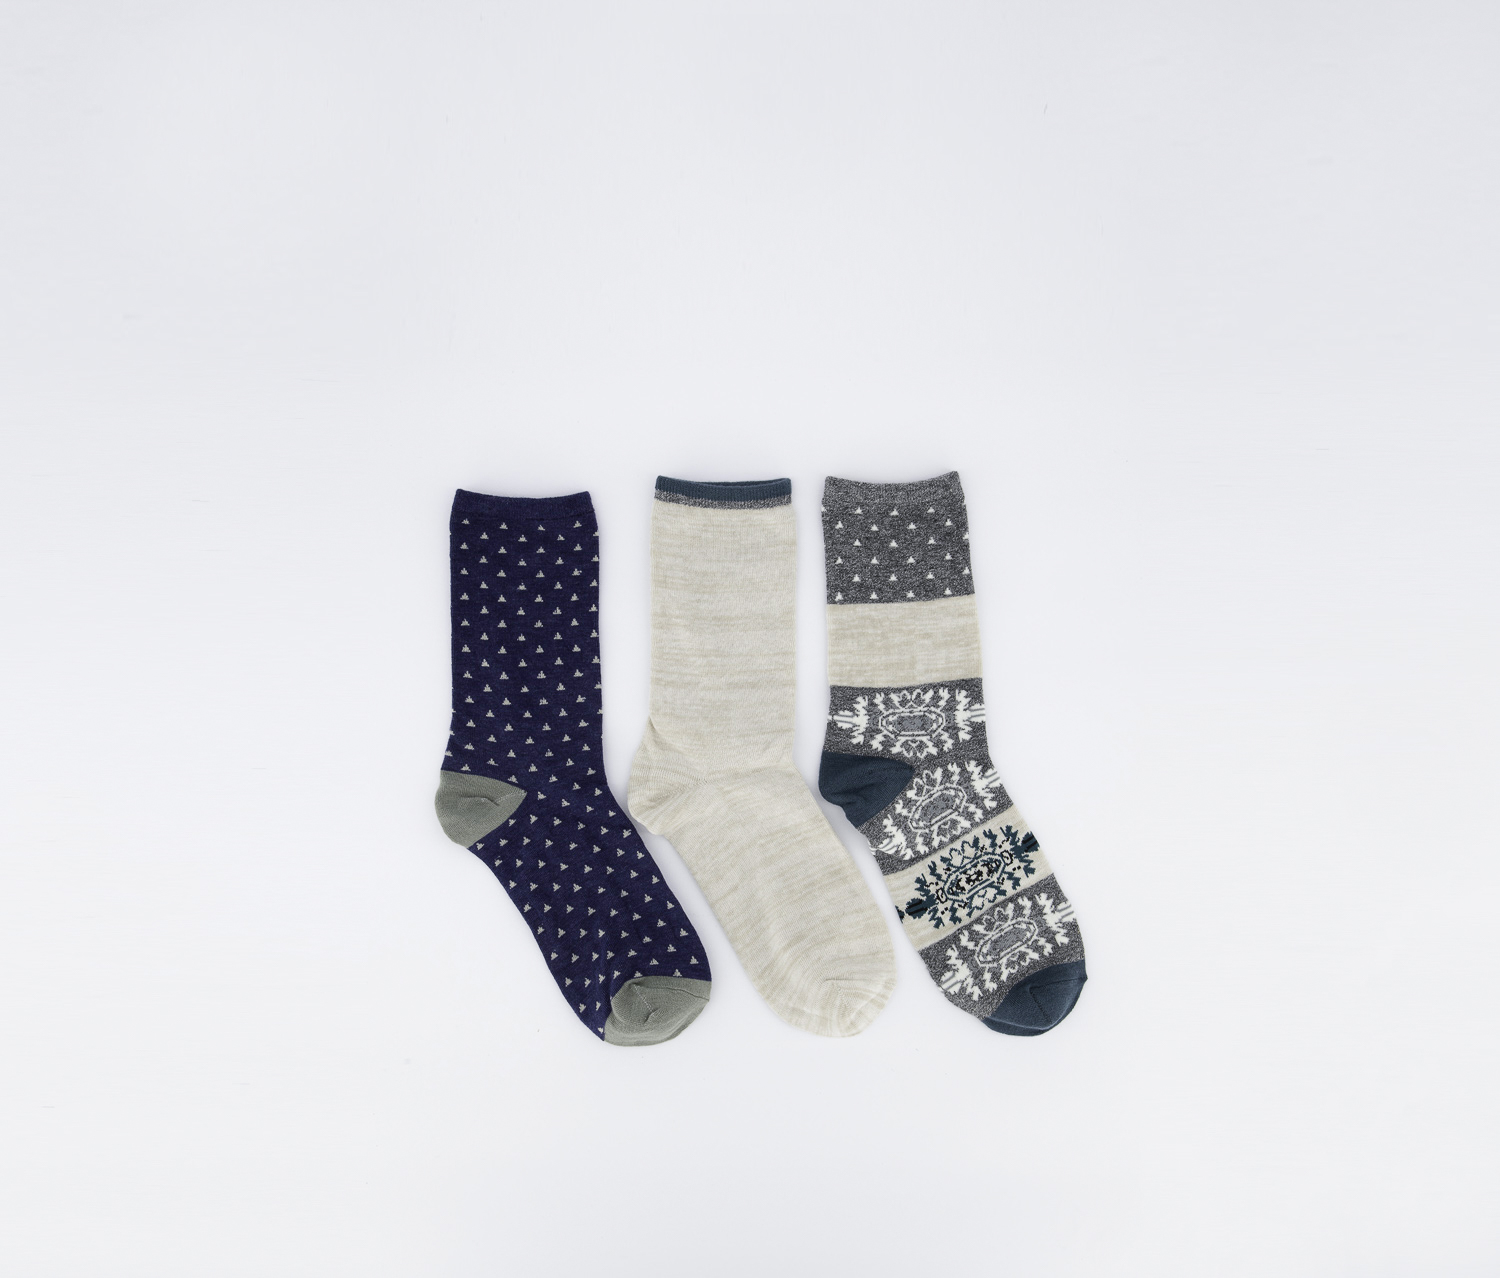 Aztec 3 Pairs of Socks, Navy/Gray